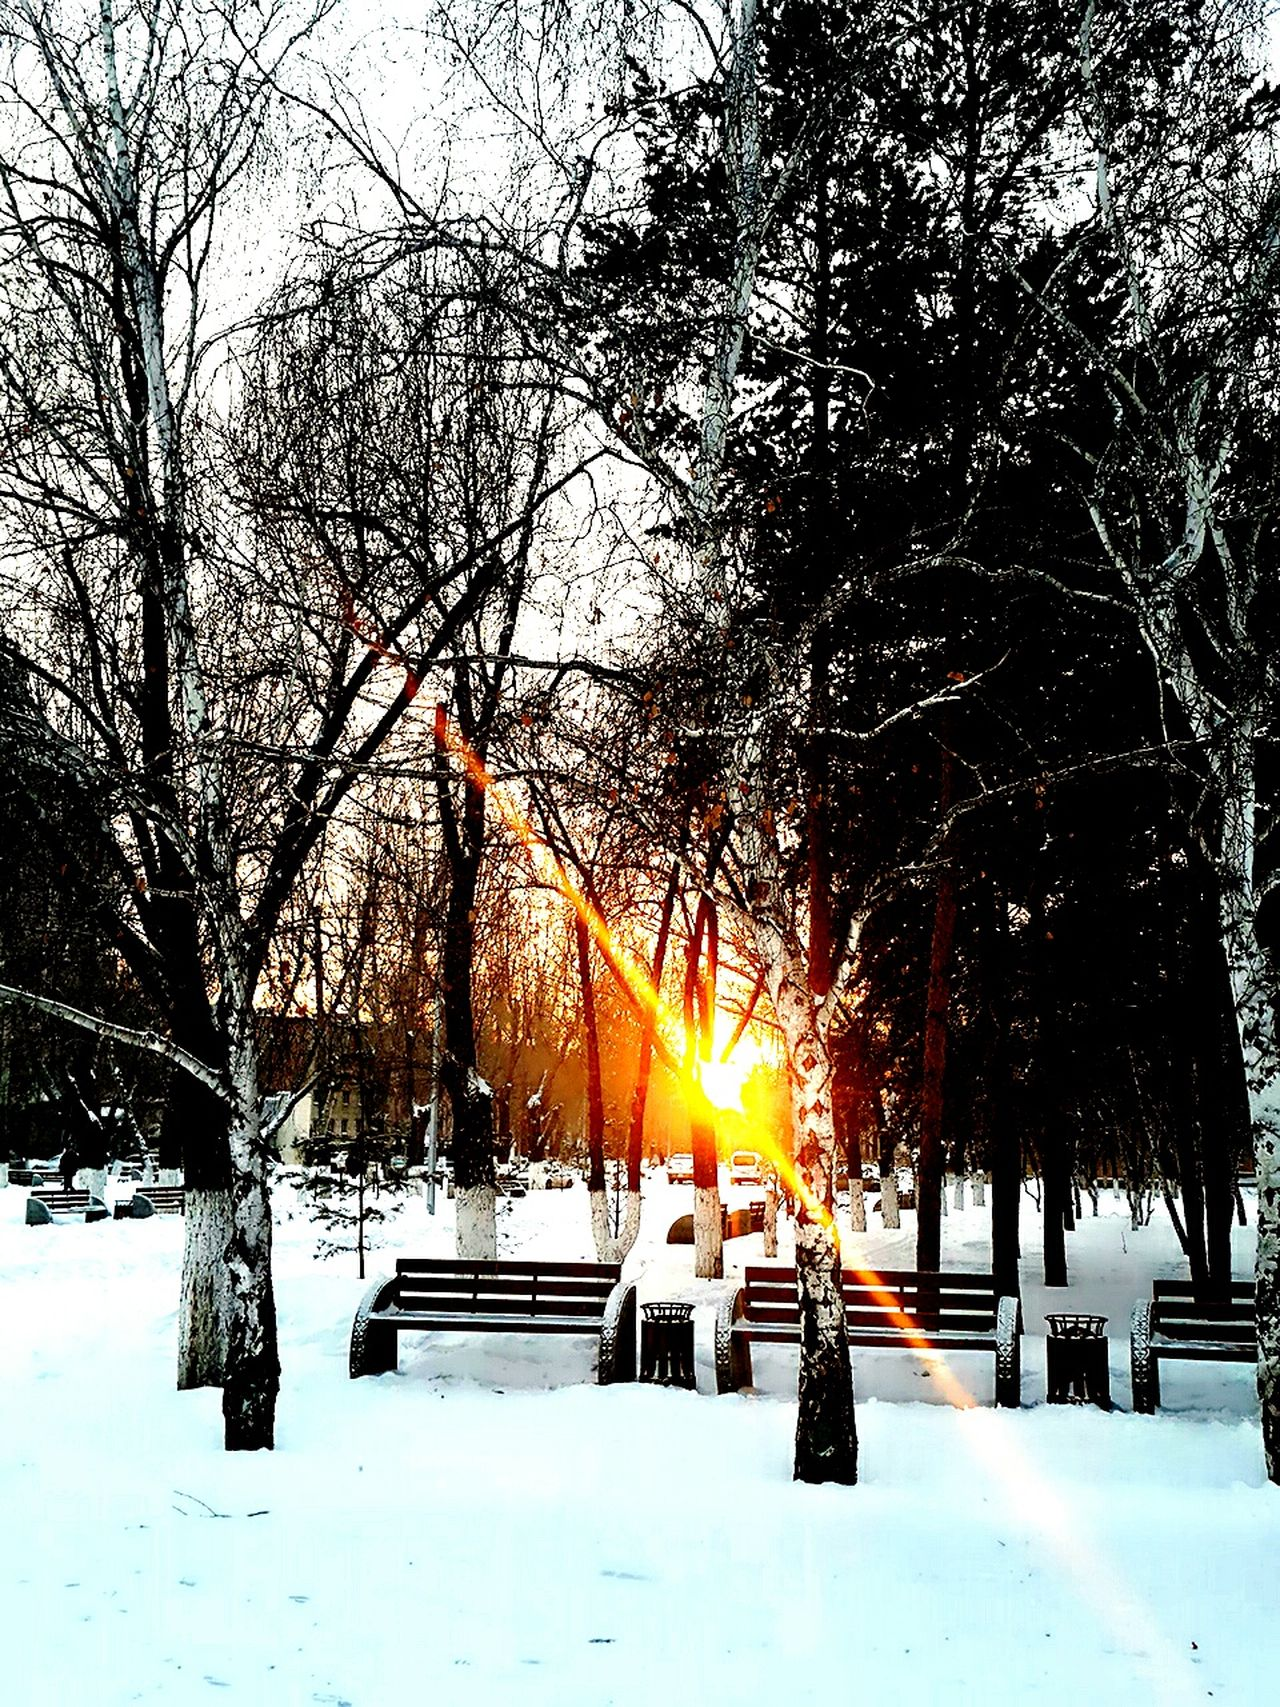 Cold Temperature Snow Tree Sunlight Landscape Beauty In Nature Winter Outdoors Snow Sports Snow Sports